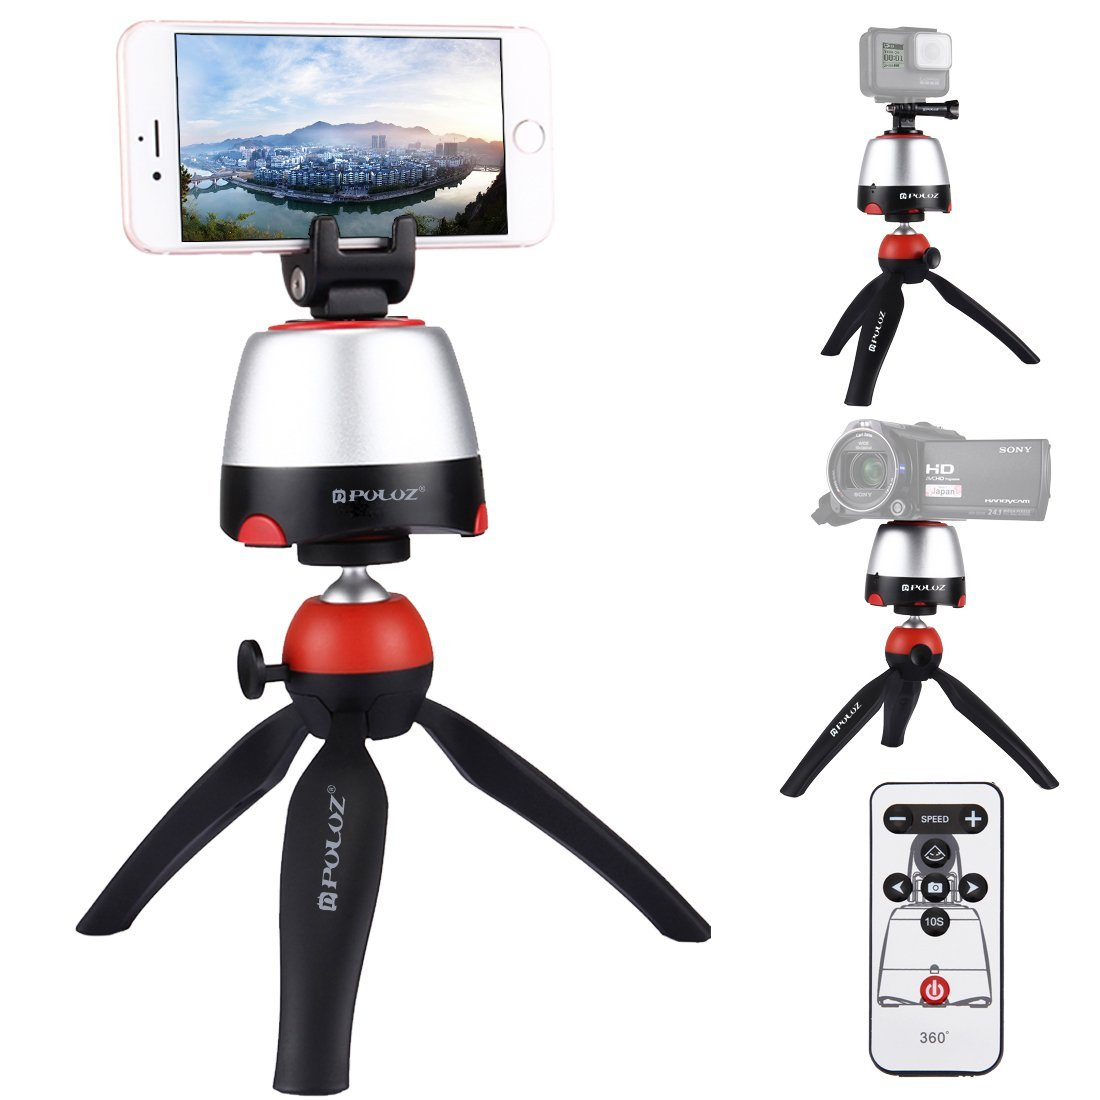 PULUZ Pocket Mini Tripod Mount with 360 Degree Ball Head for Smartphones, GoPro, DSLR Cameras (Red)